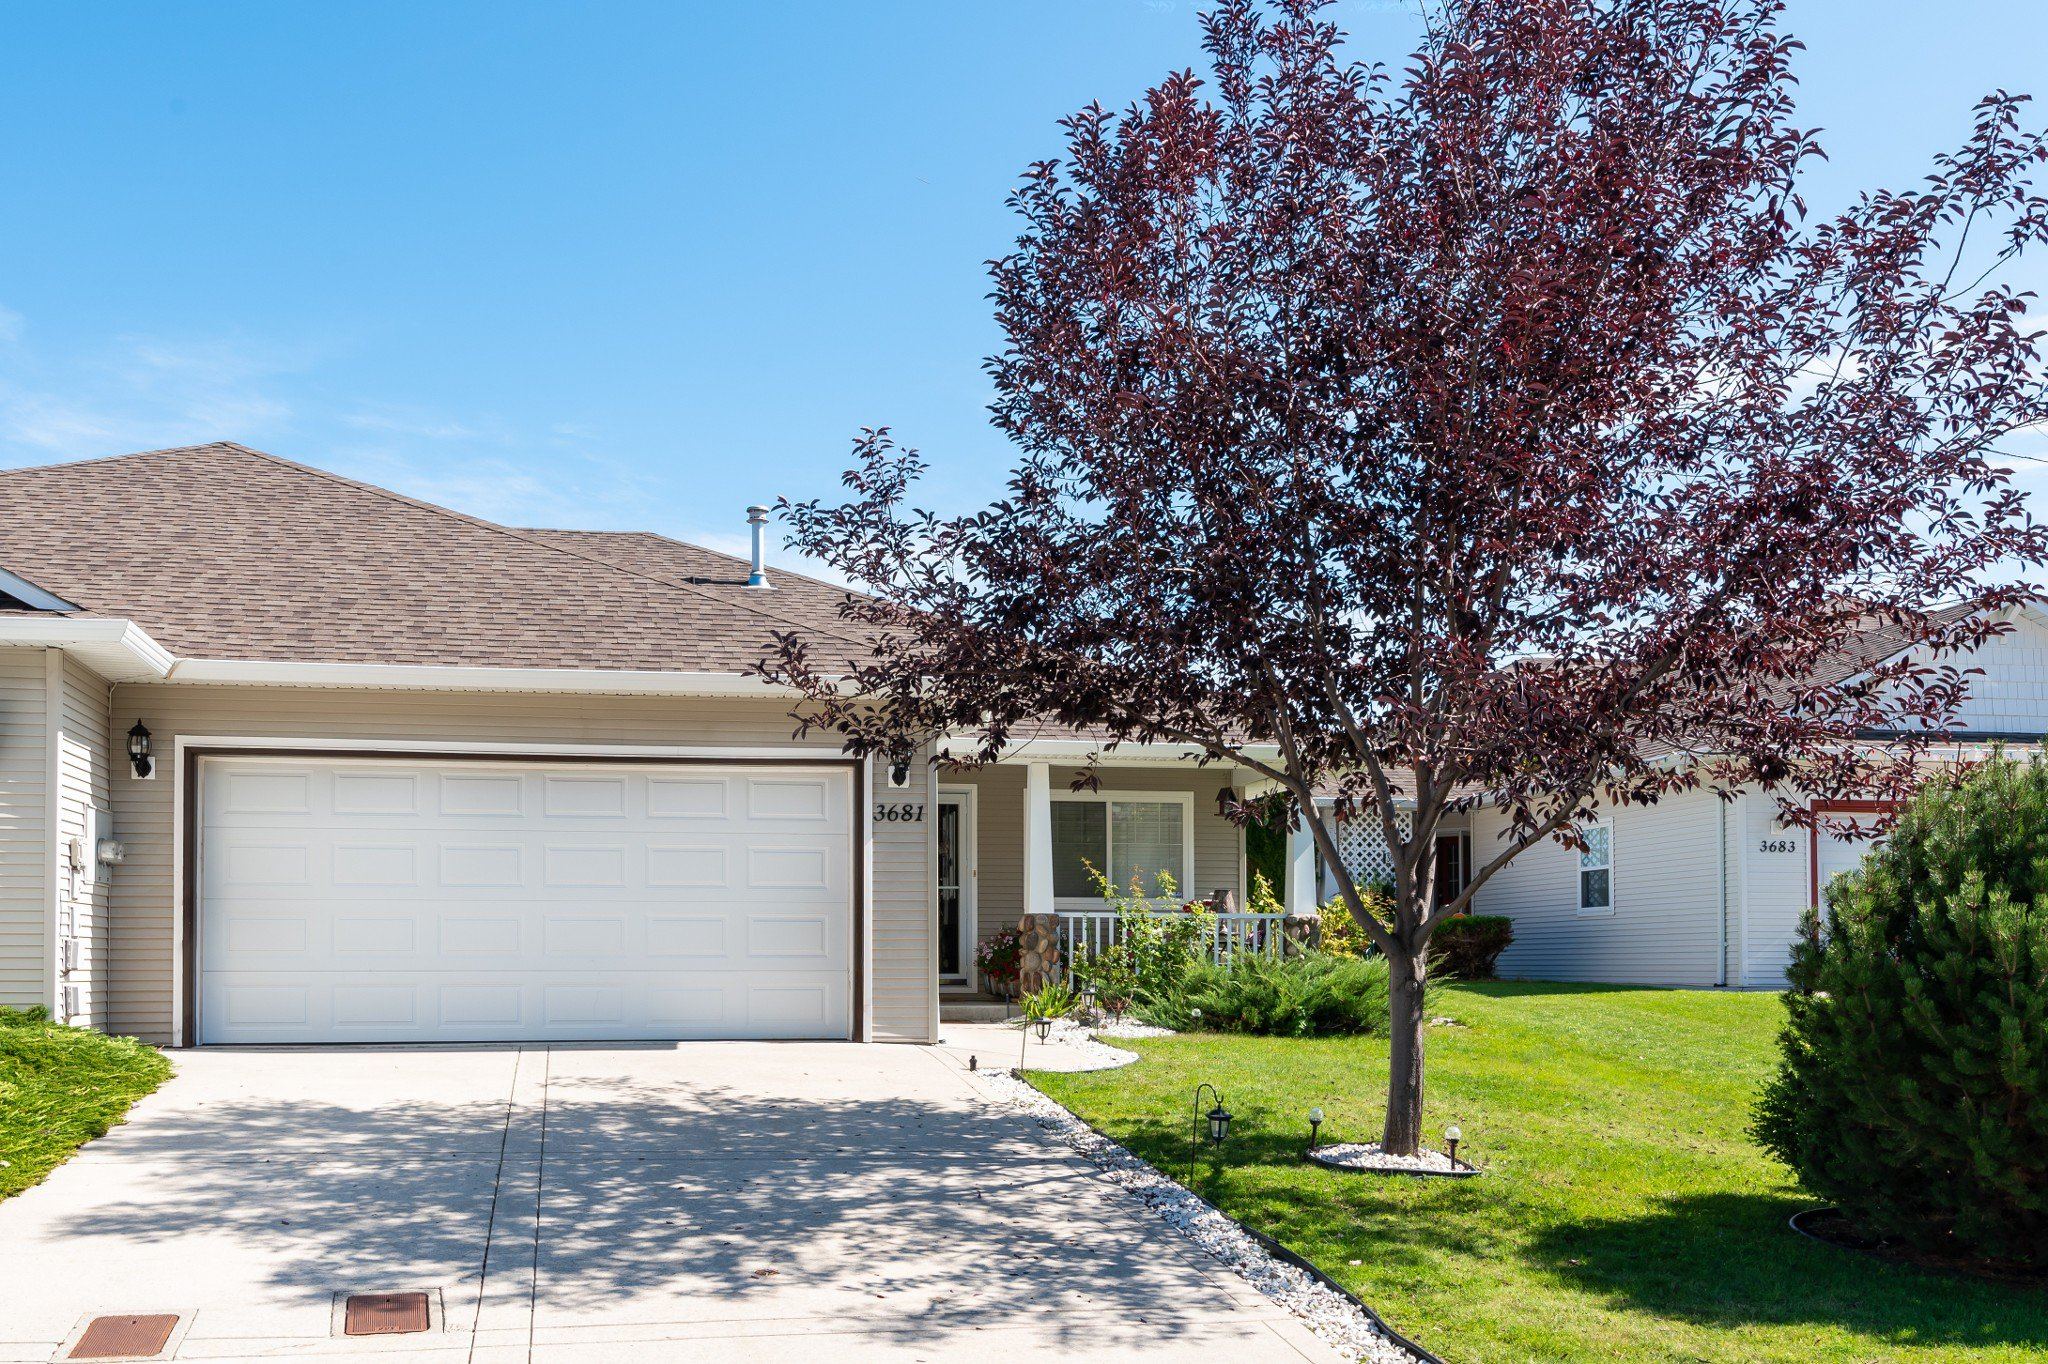 Main Photo: 3681 Morningside Drive: West Kelowna House Duplex for sale (South Okanagan)  : MLS®# 10191317